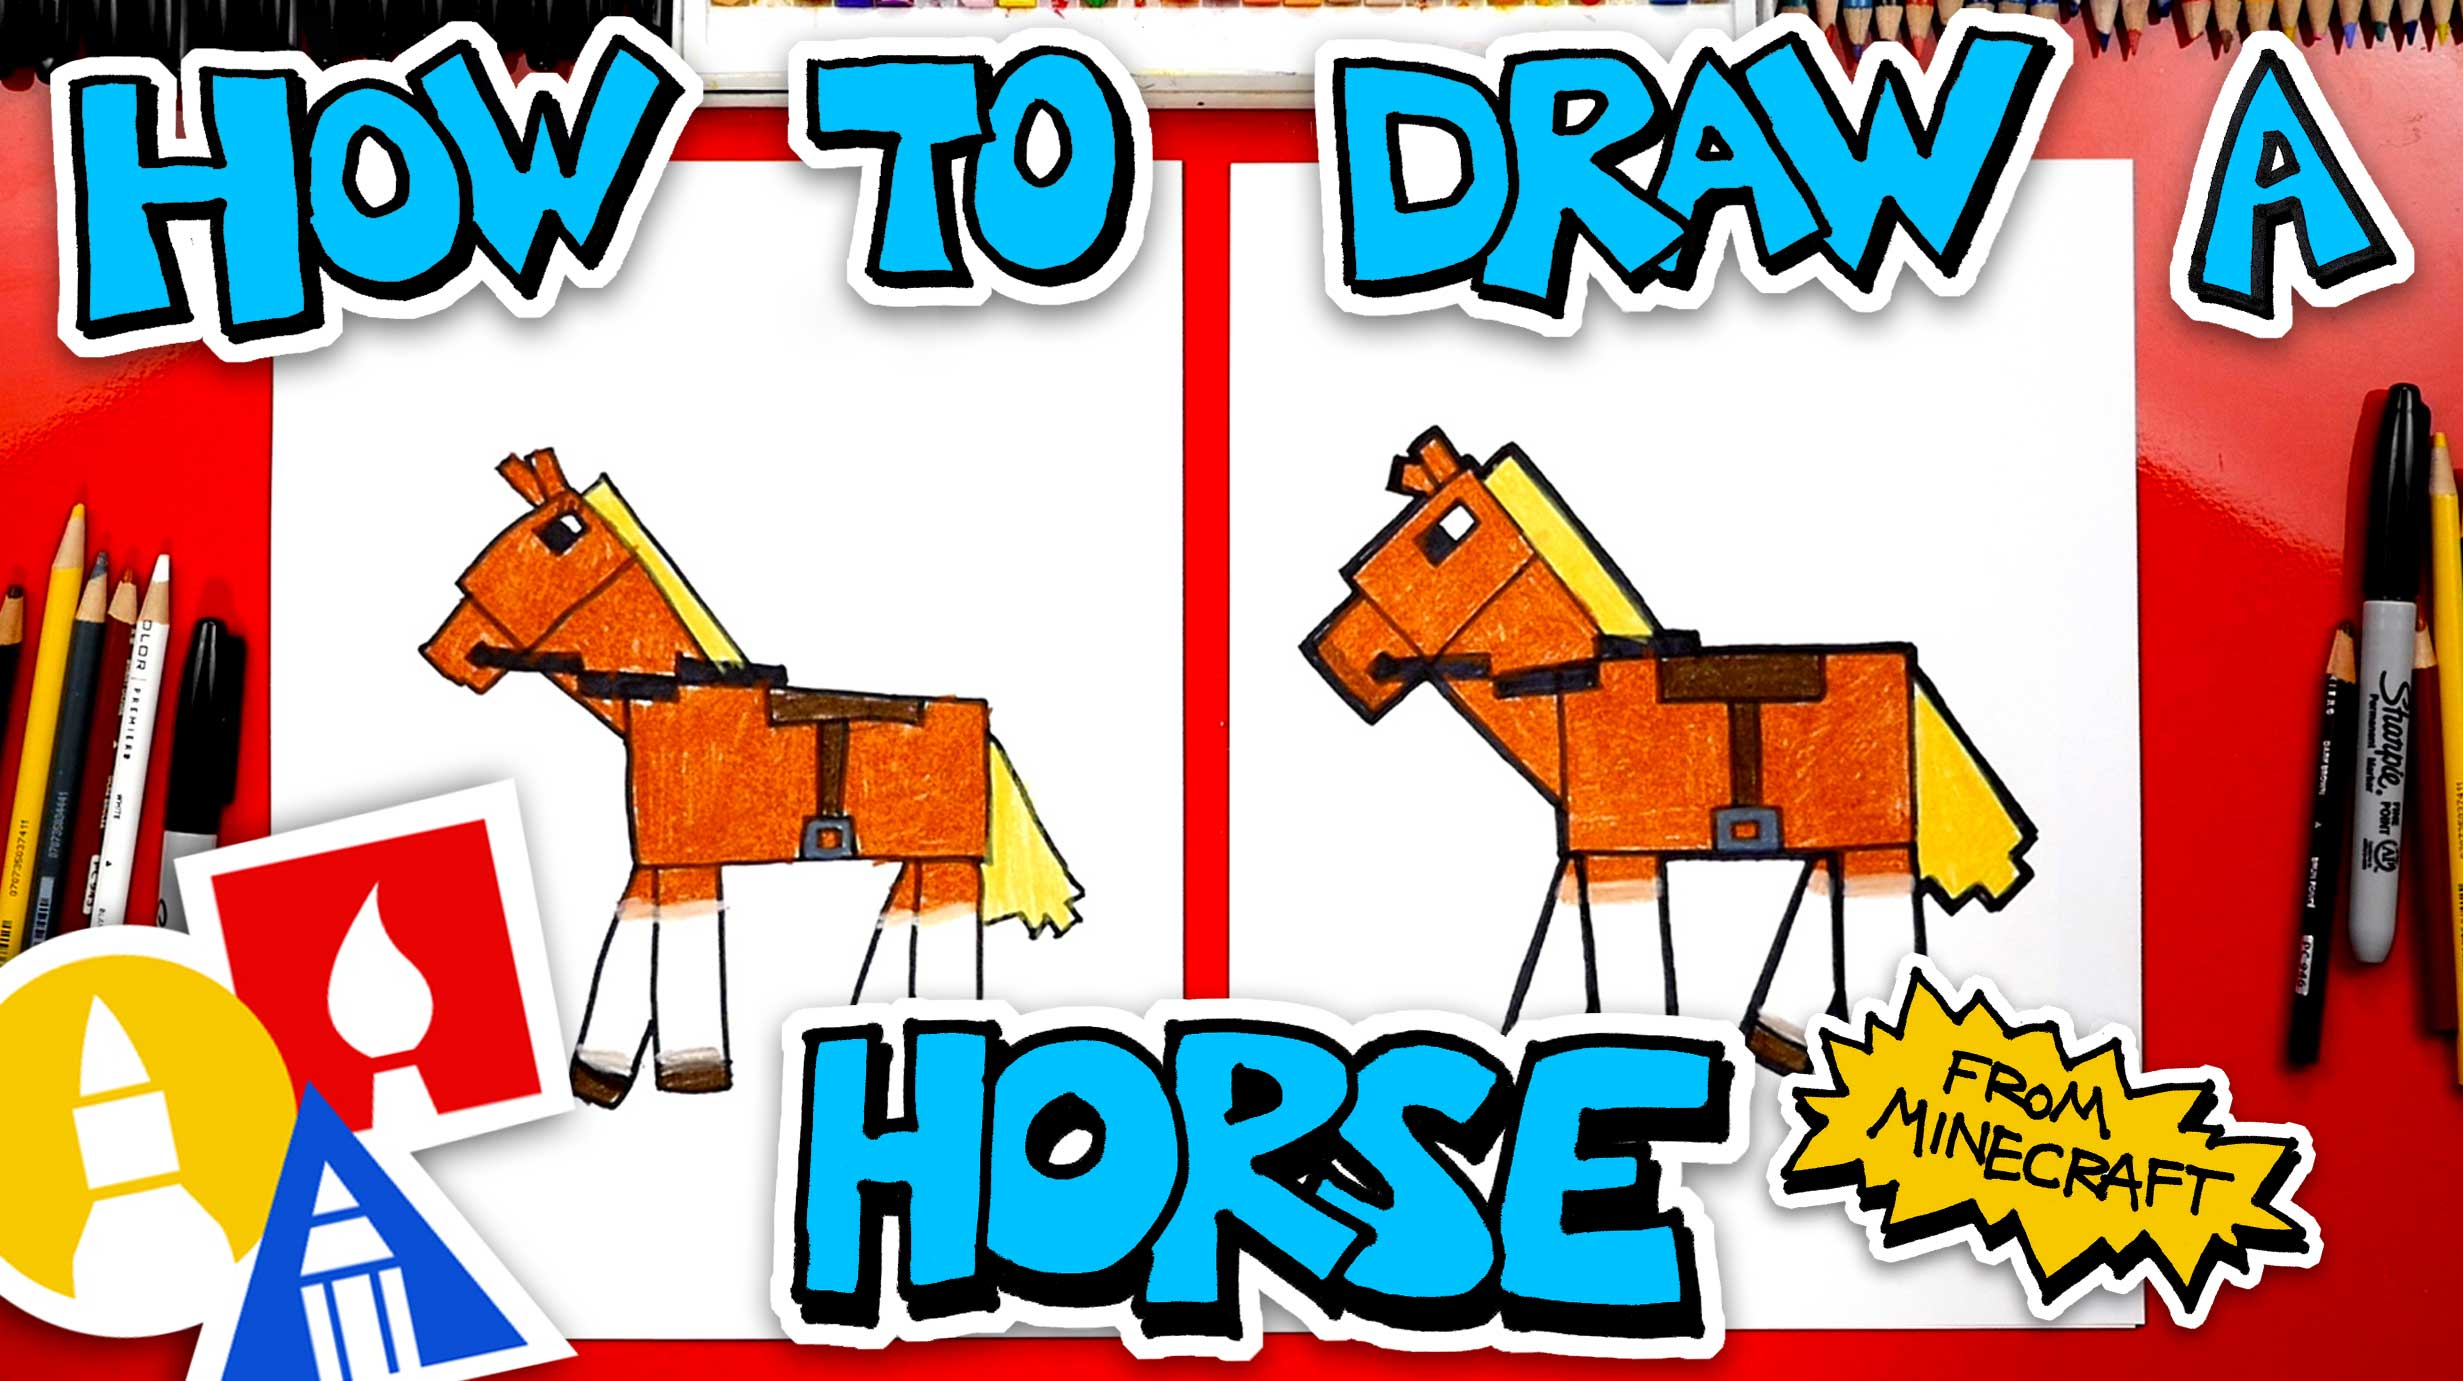 How To Draw A Horse From Minecraft Art For Kids Hub